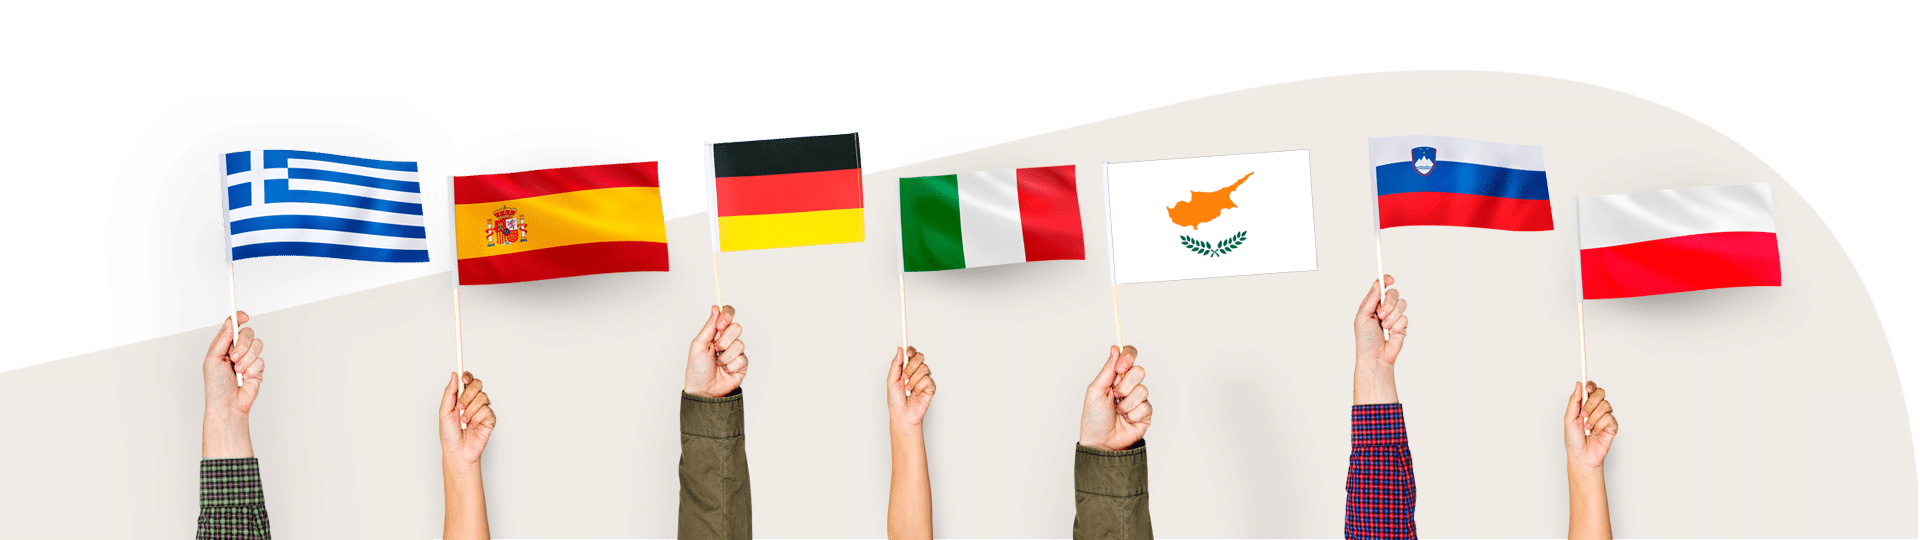 partners flags